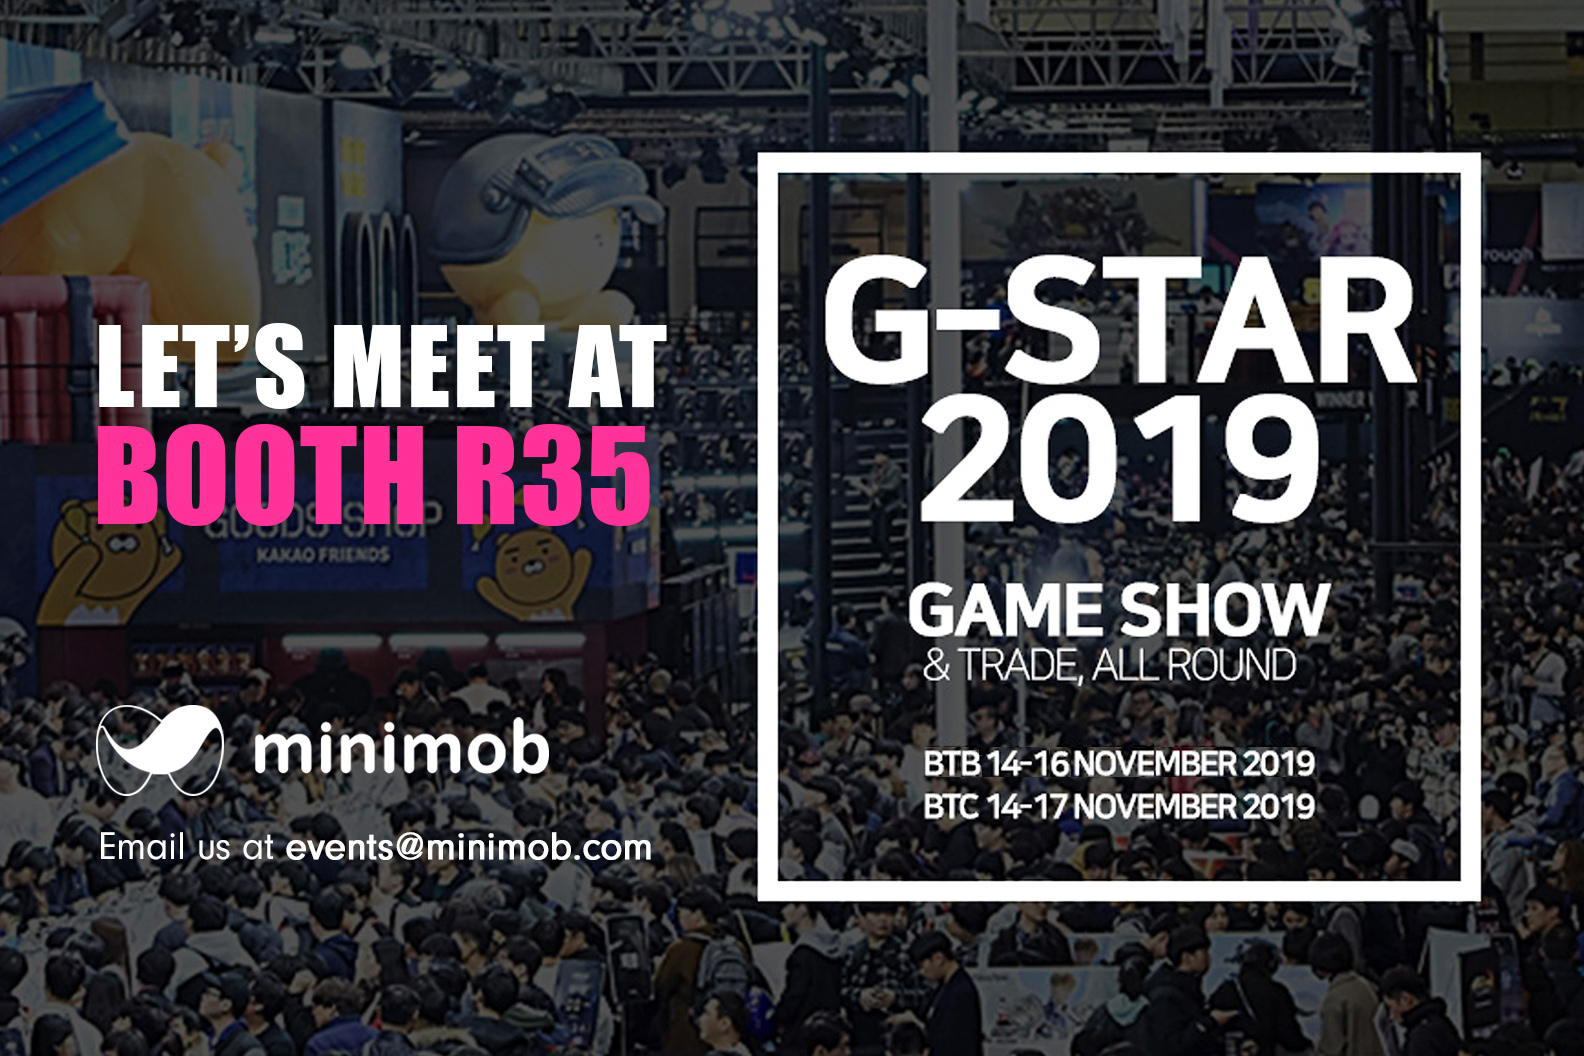 Minimob exhibits @ G-Star Korea, Bussan